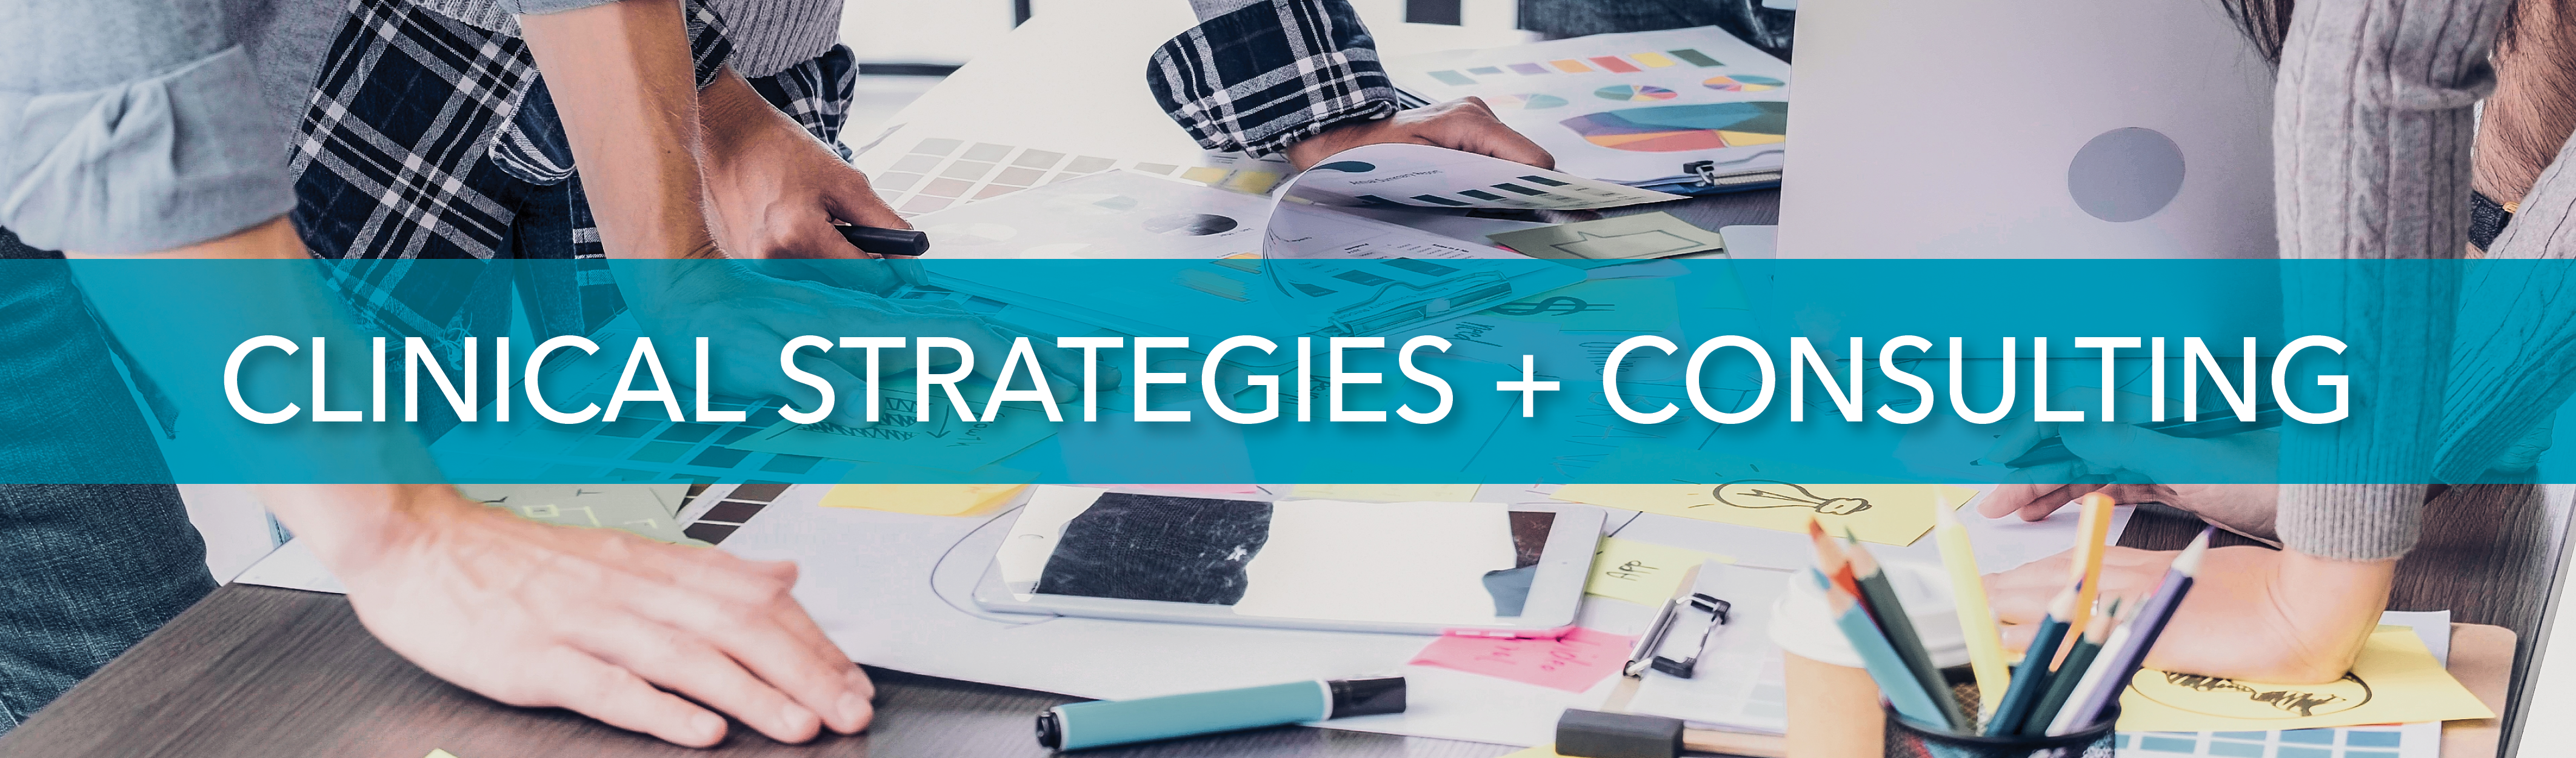 Clinical Strategies + Consulting - Web Page Header 092920